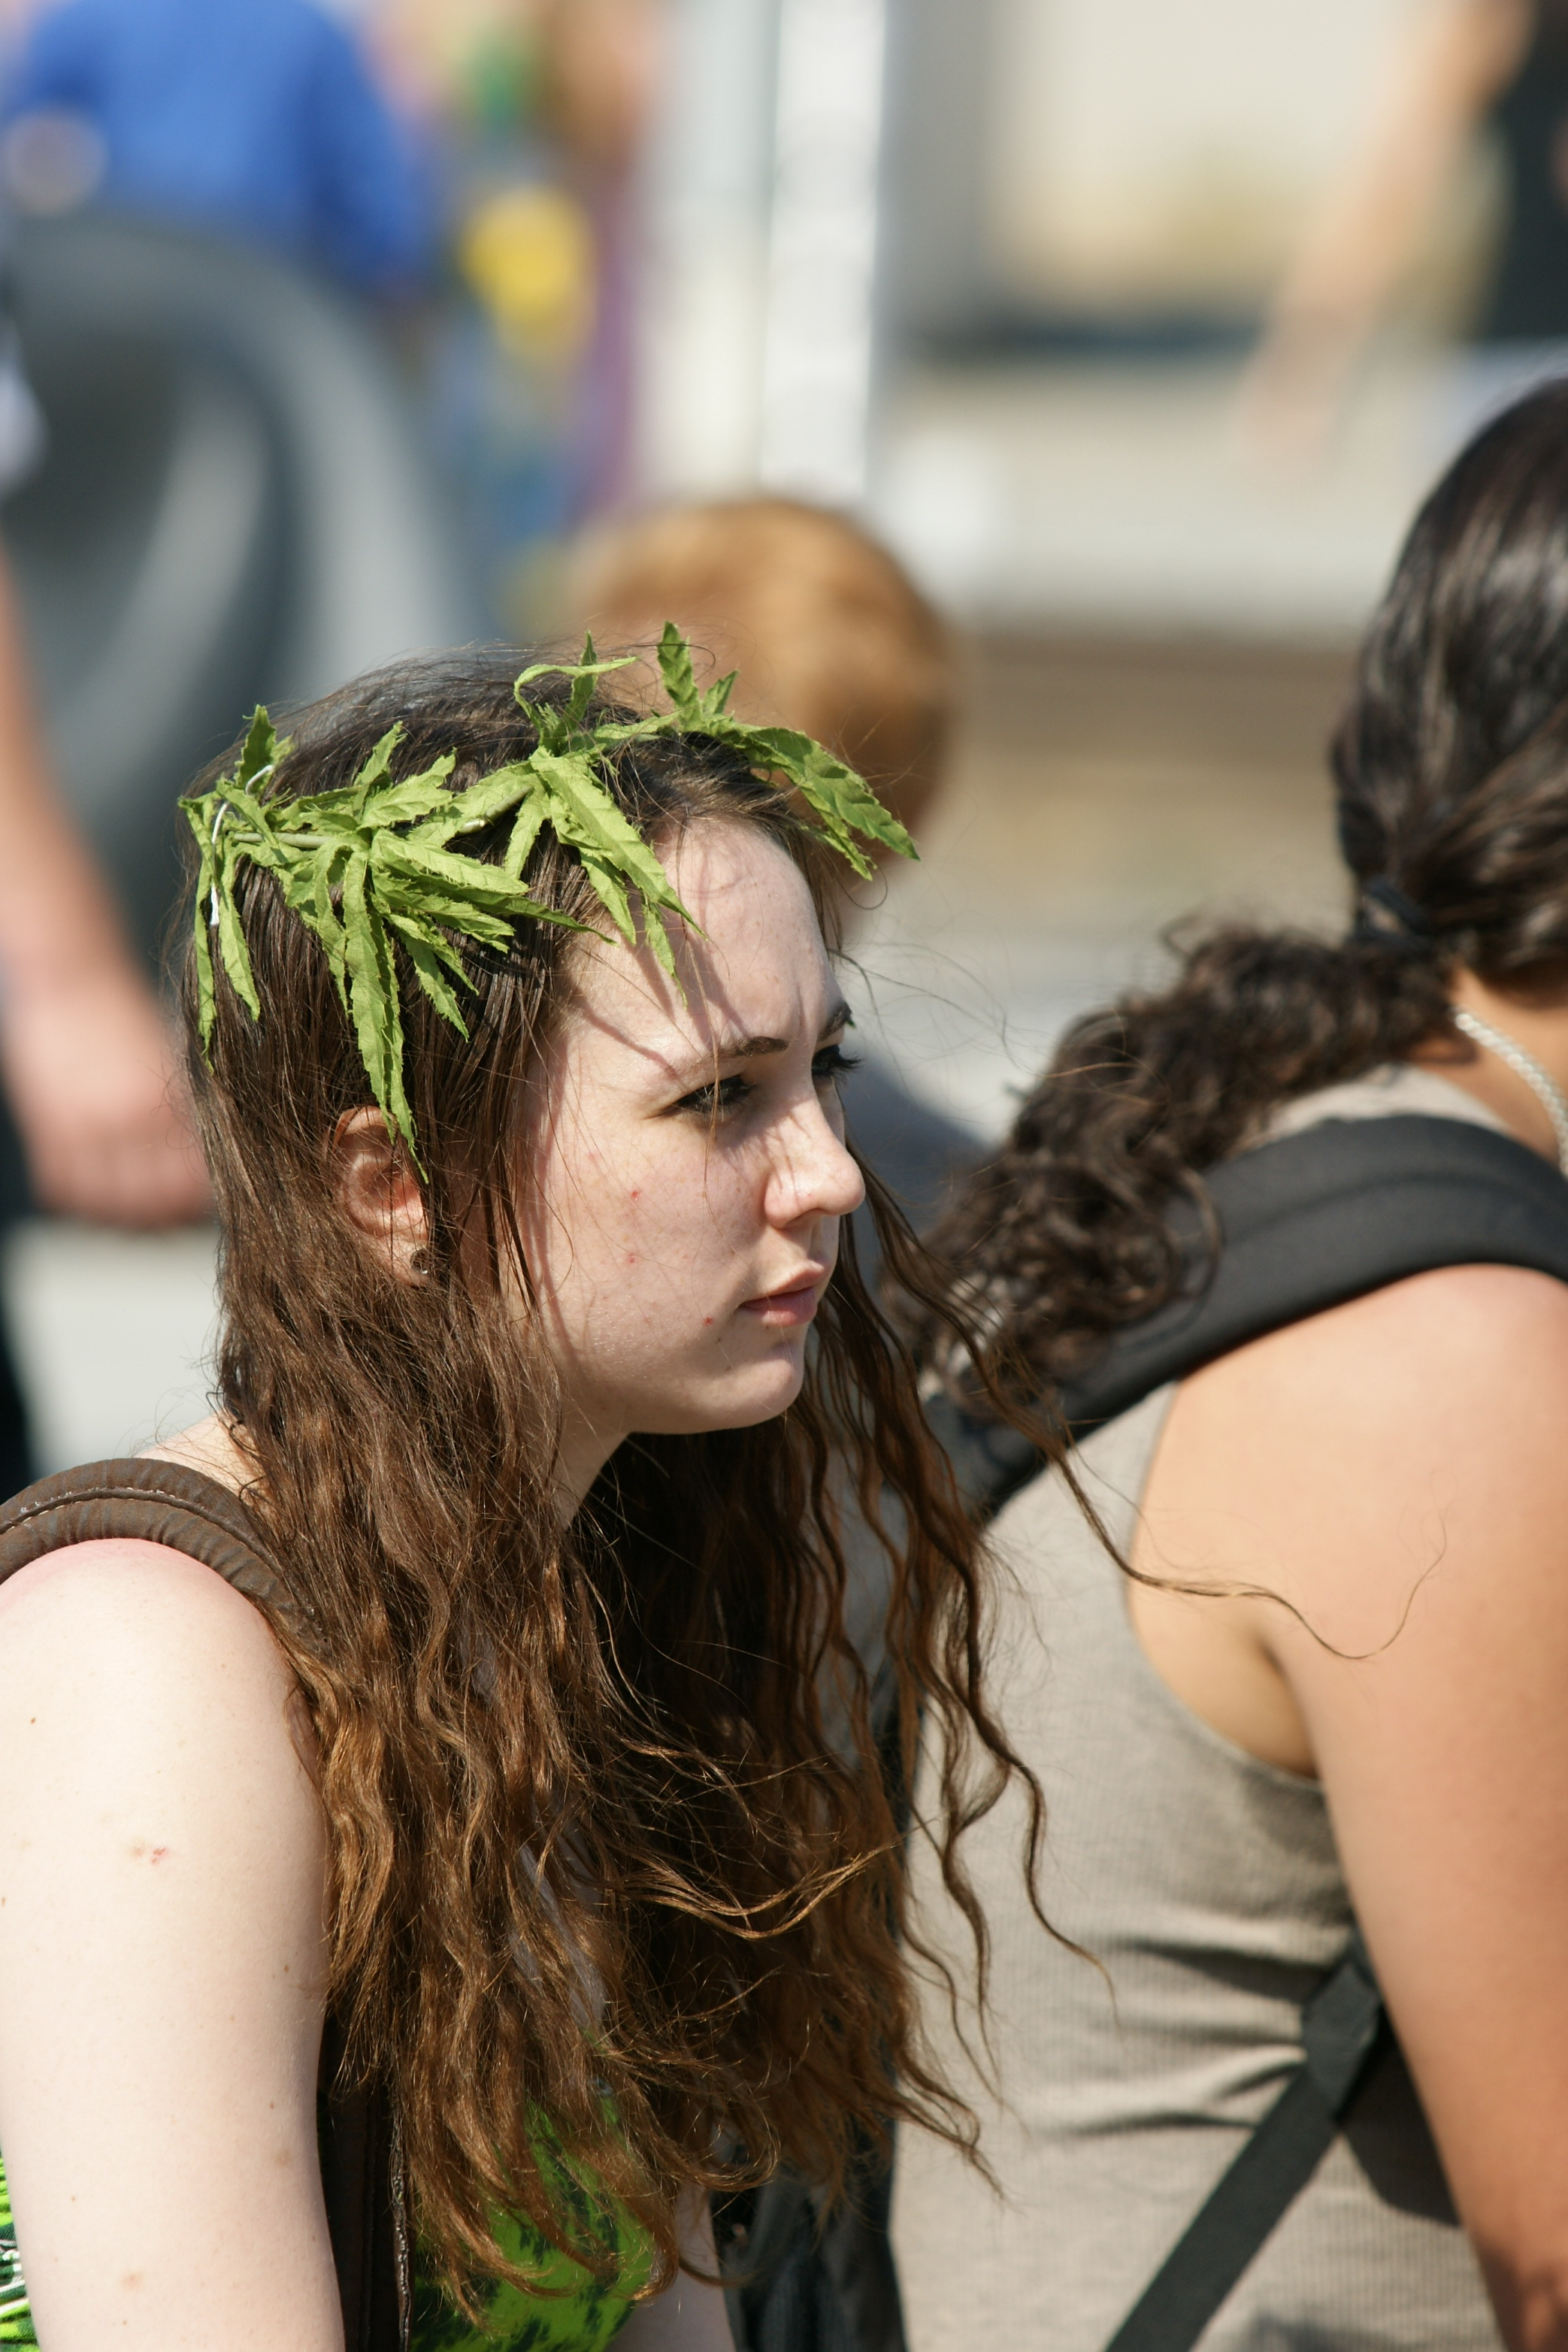 How Long Does Weed Stay in Your Hair? Science Explains | Inverse